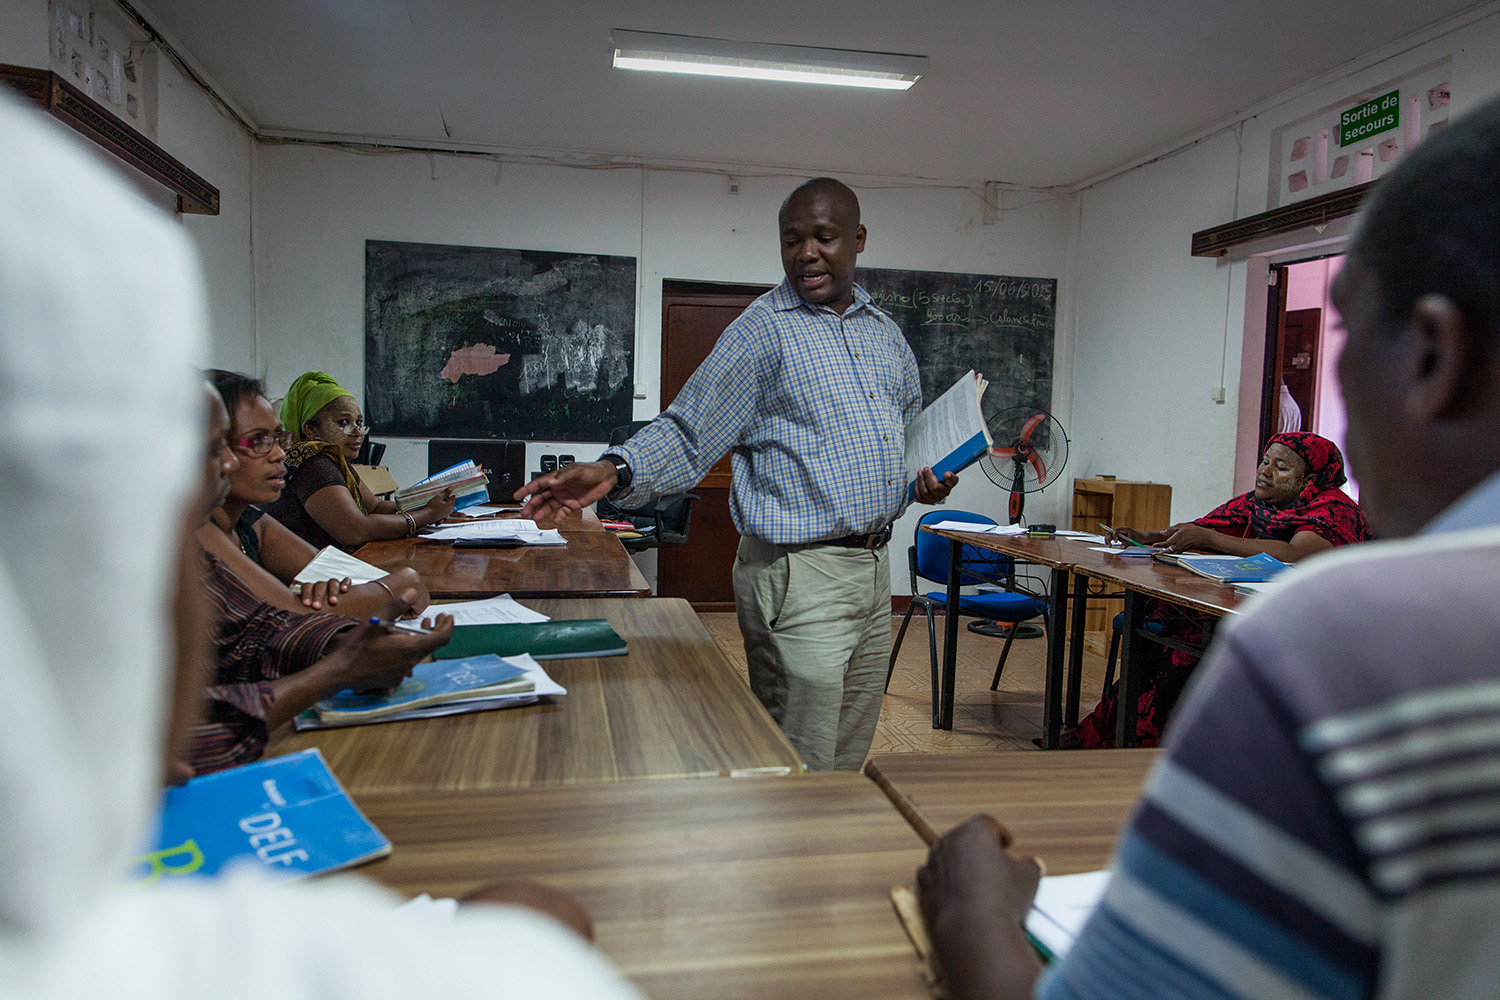 Migrants take french lessons at the Association Solidarite Mayotte in Mamoudzou, Mayotte, France on Tuesday, June 16, 2015. The association is the only center in Mayotte to propose a complete assistance to migrants. They have to complete the Delf B1 certificate to obtain a visa.